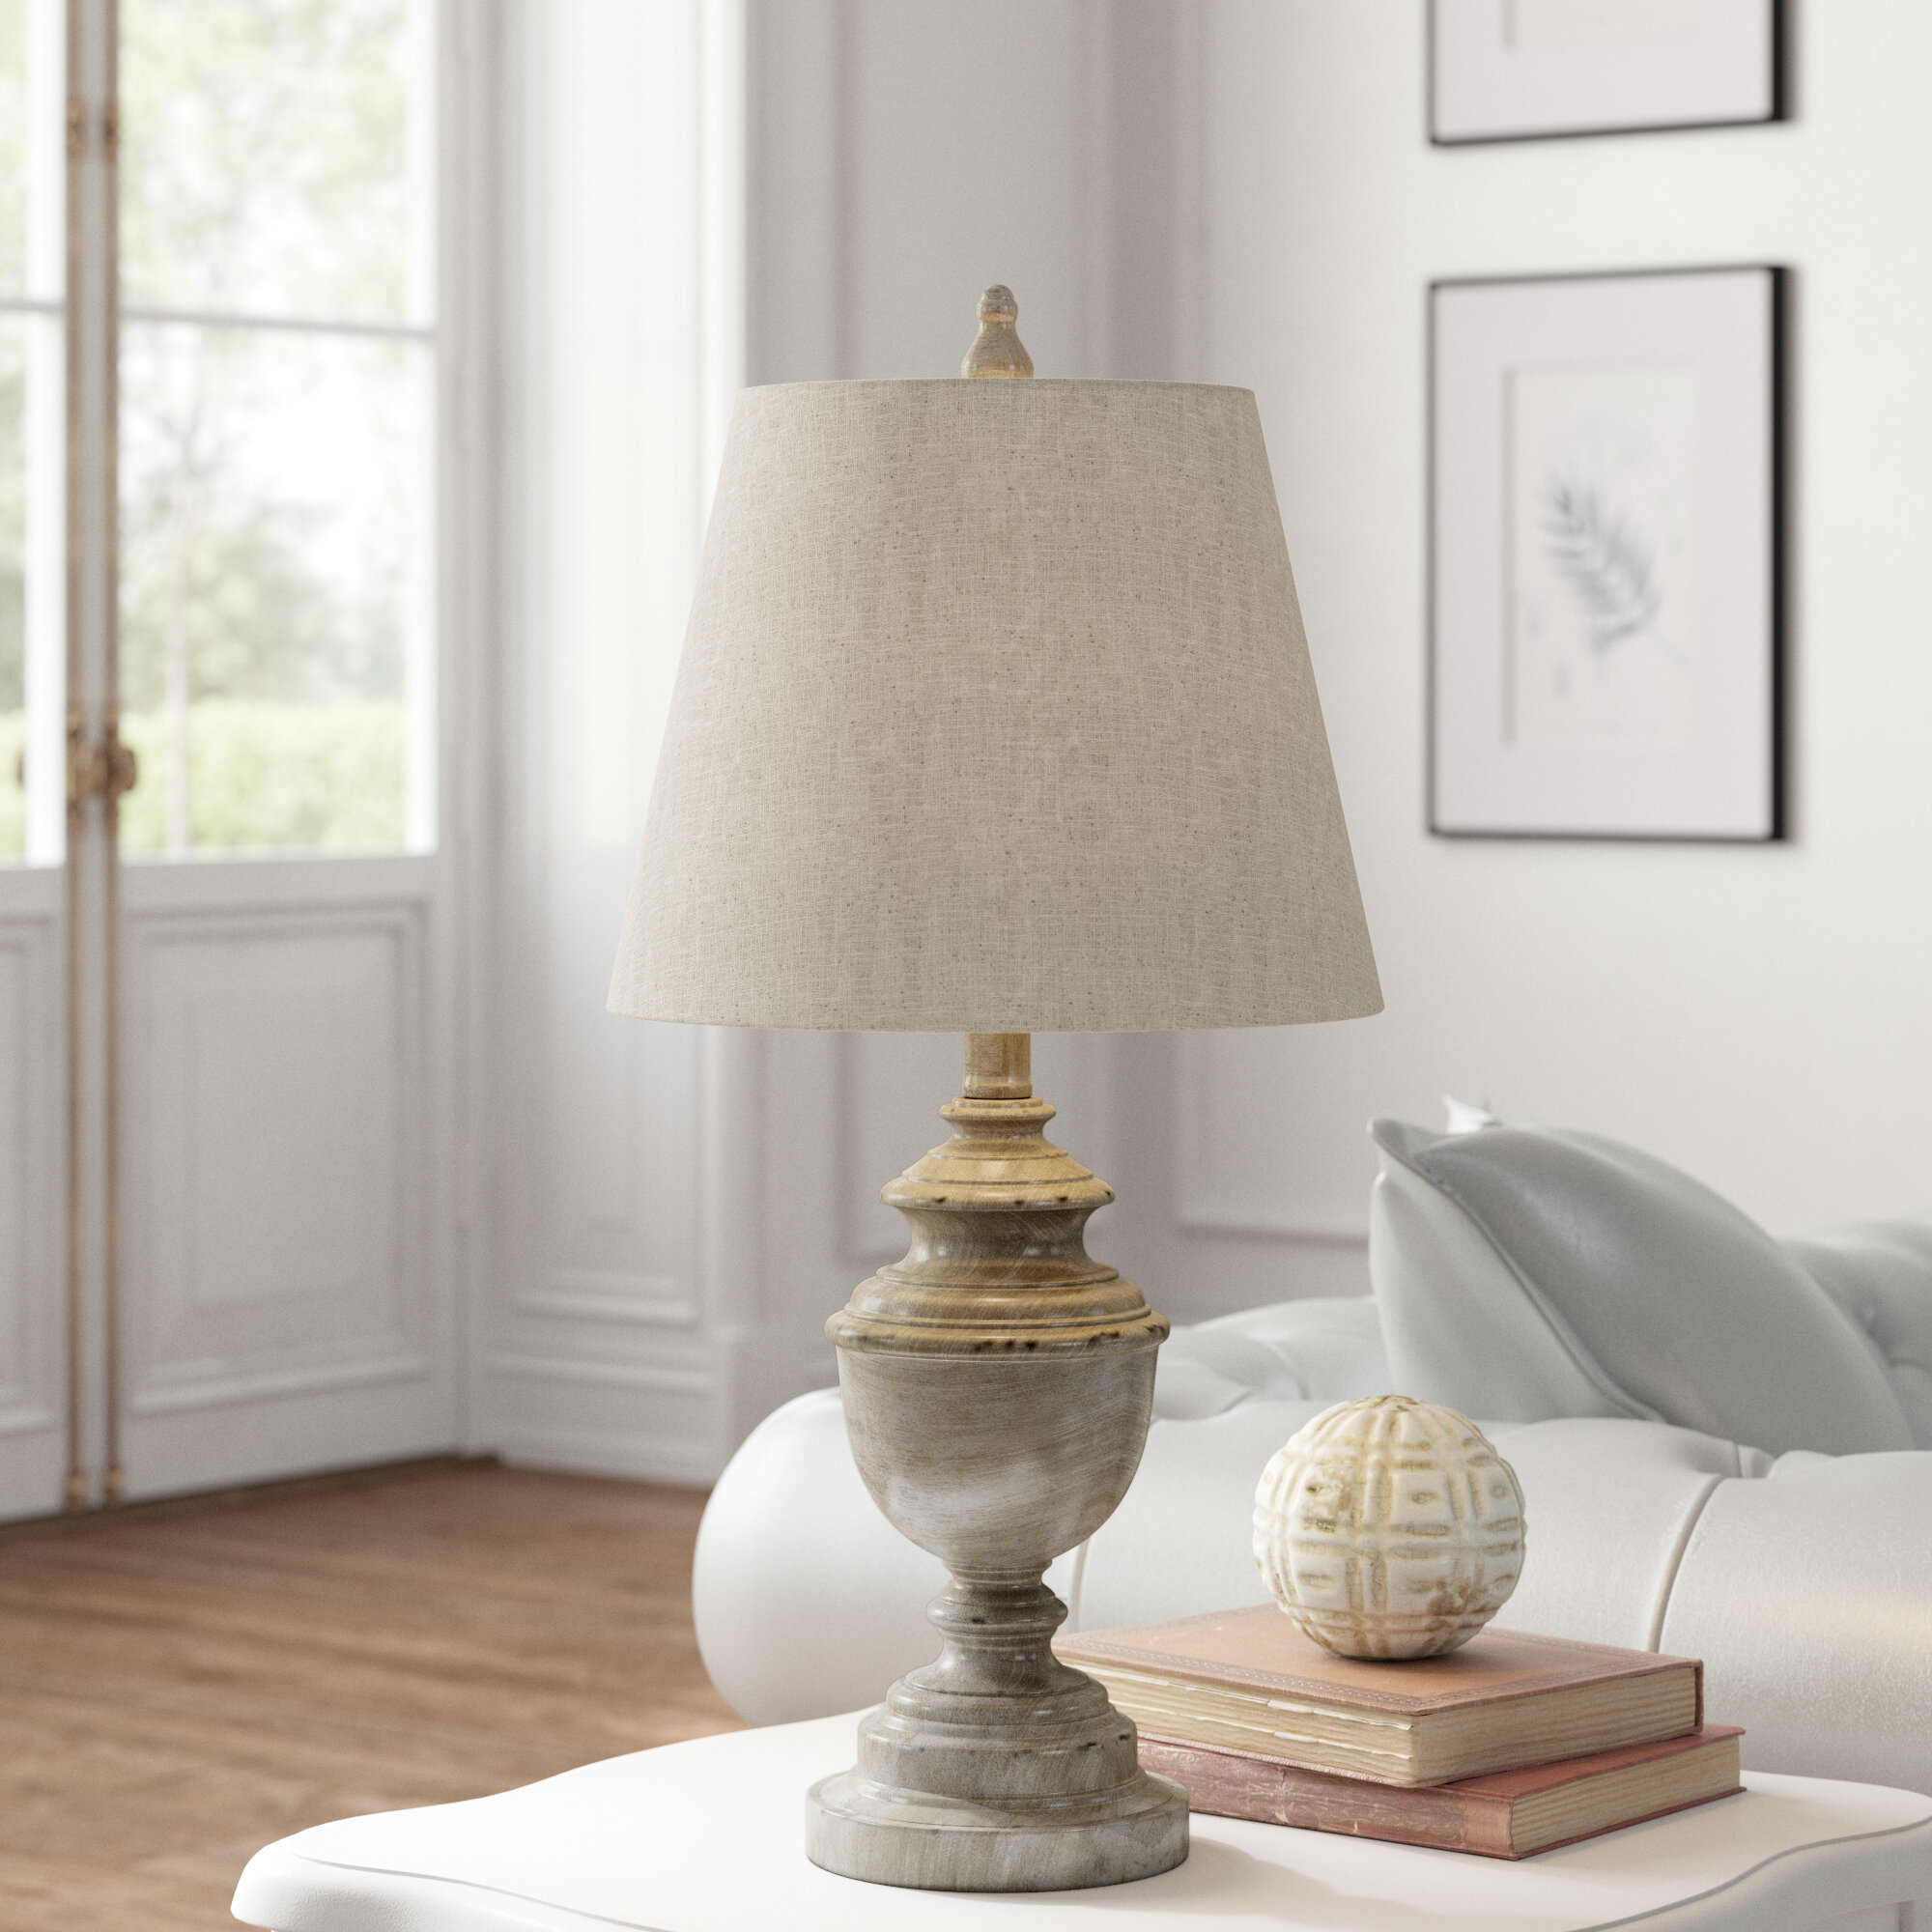 Farmhouse Table Lamps Free Shipping Over 35 Wayfair